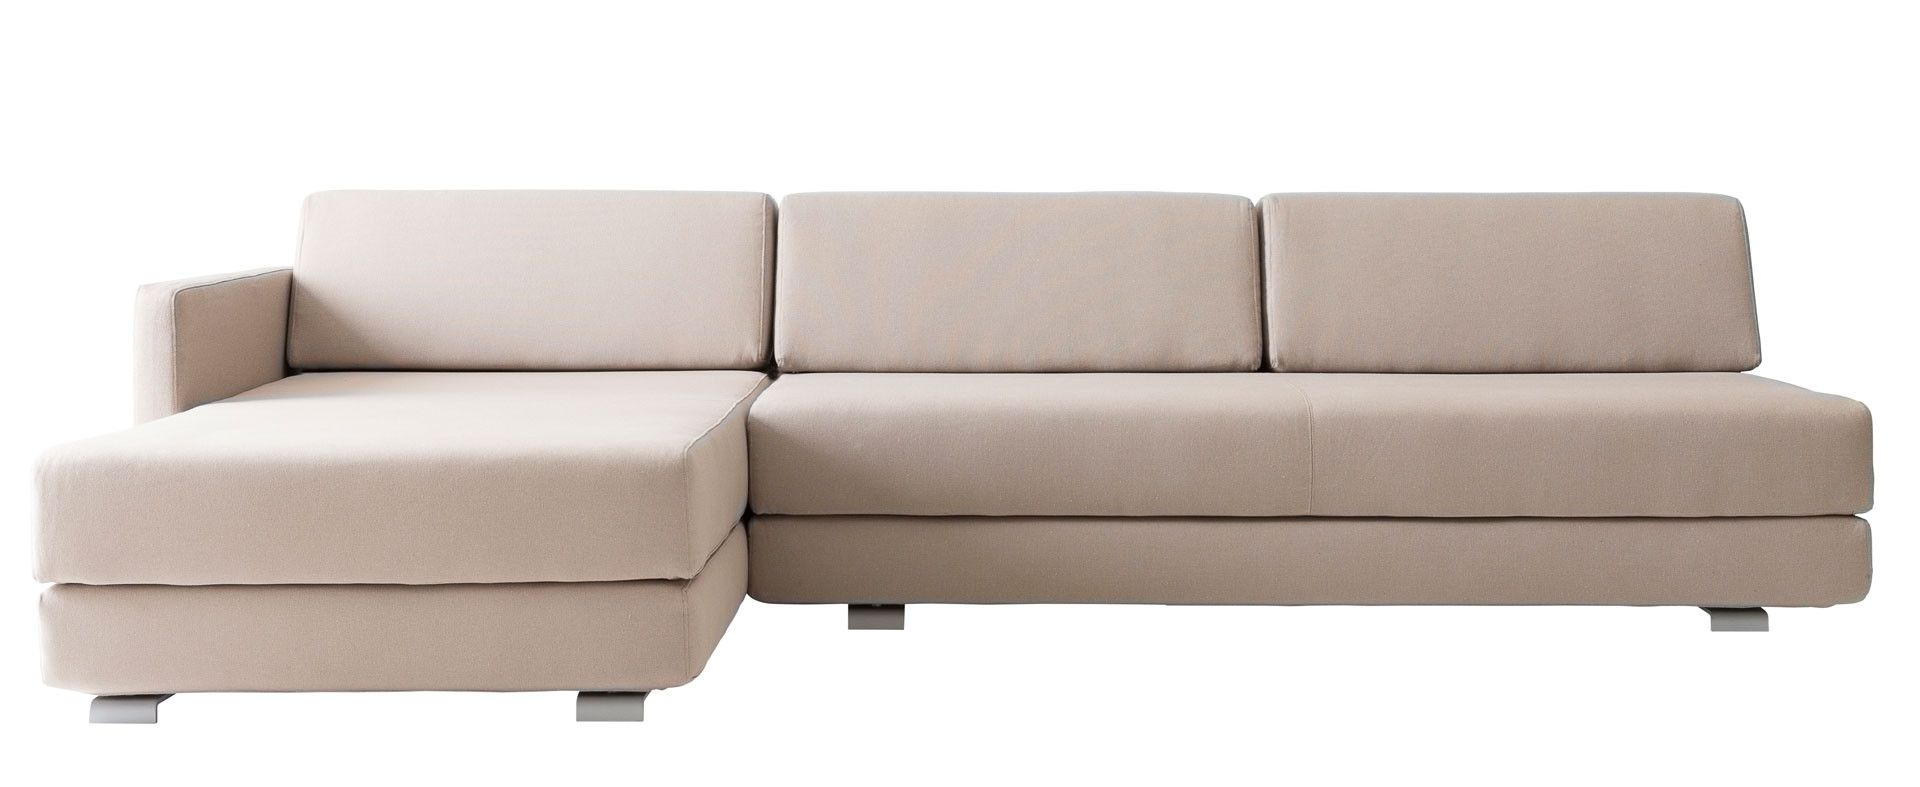 Lounge 3 Seat Sofa Bed Lounge Sofa Sofa Inspiration Sofa Bed